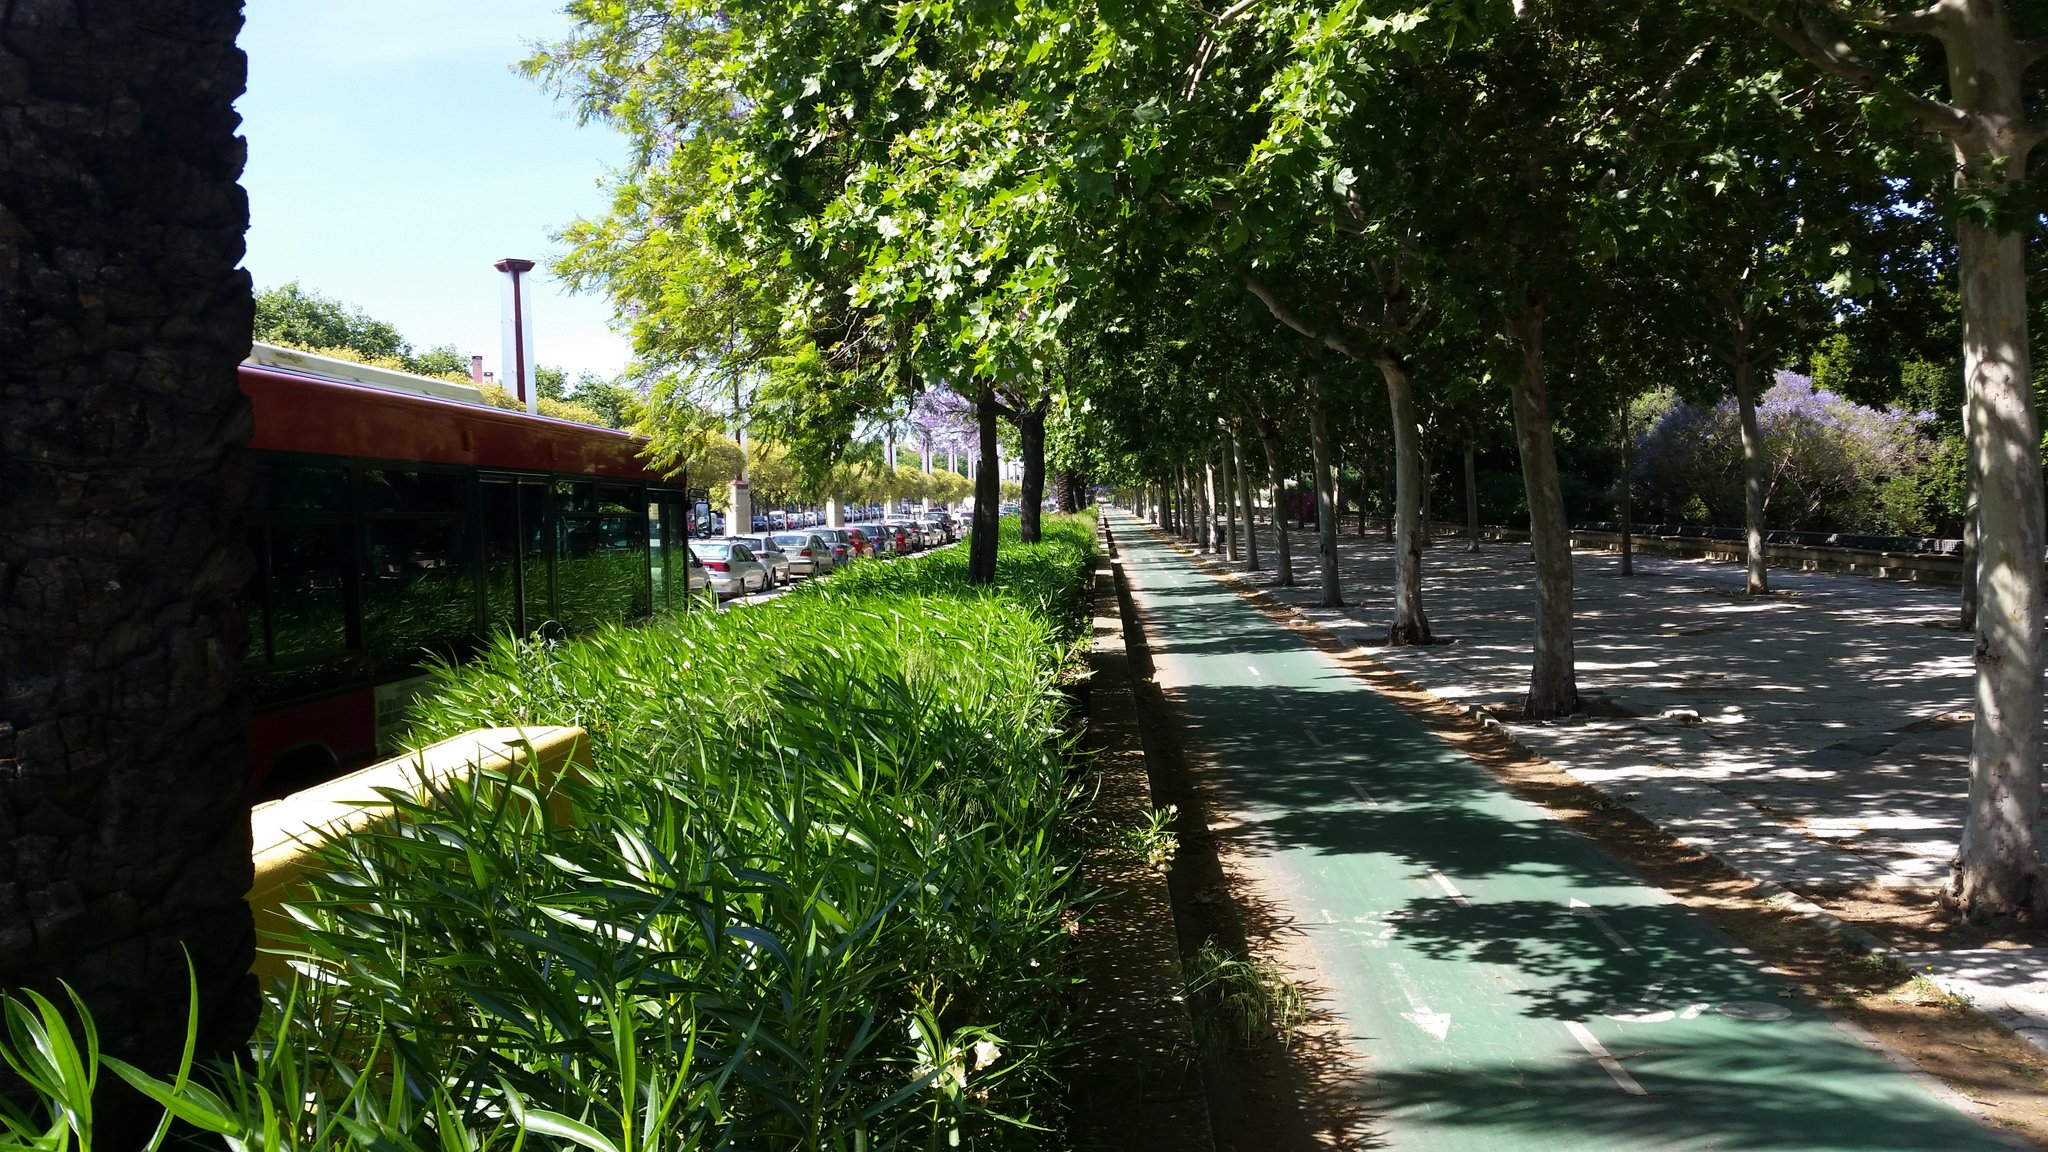 Impressive road layout #5GoMadinSeville: footway-trees-bike lanes-hedge-bus lane-parking-motors. A busy road feels safe and peaceful. https://t.co/KeCkqPqf8g